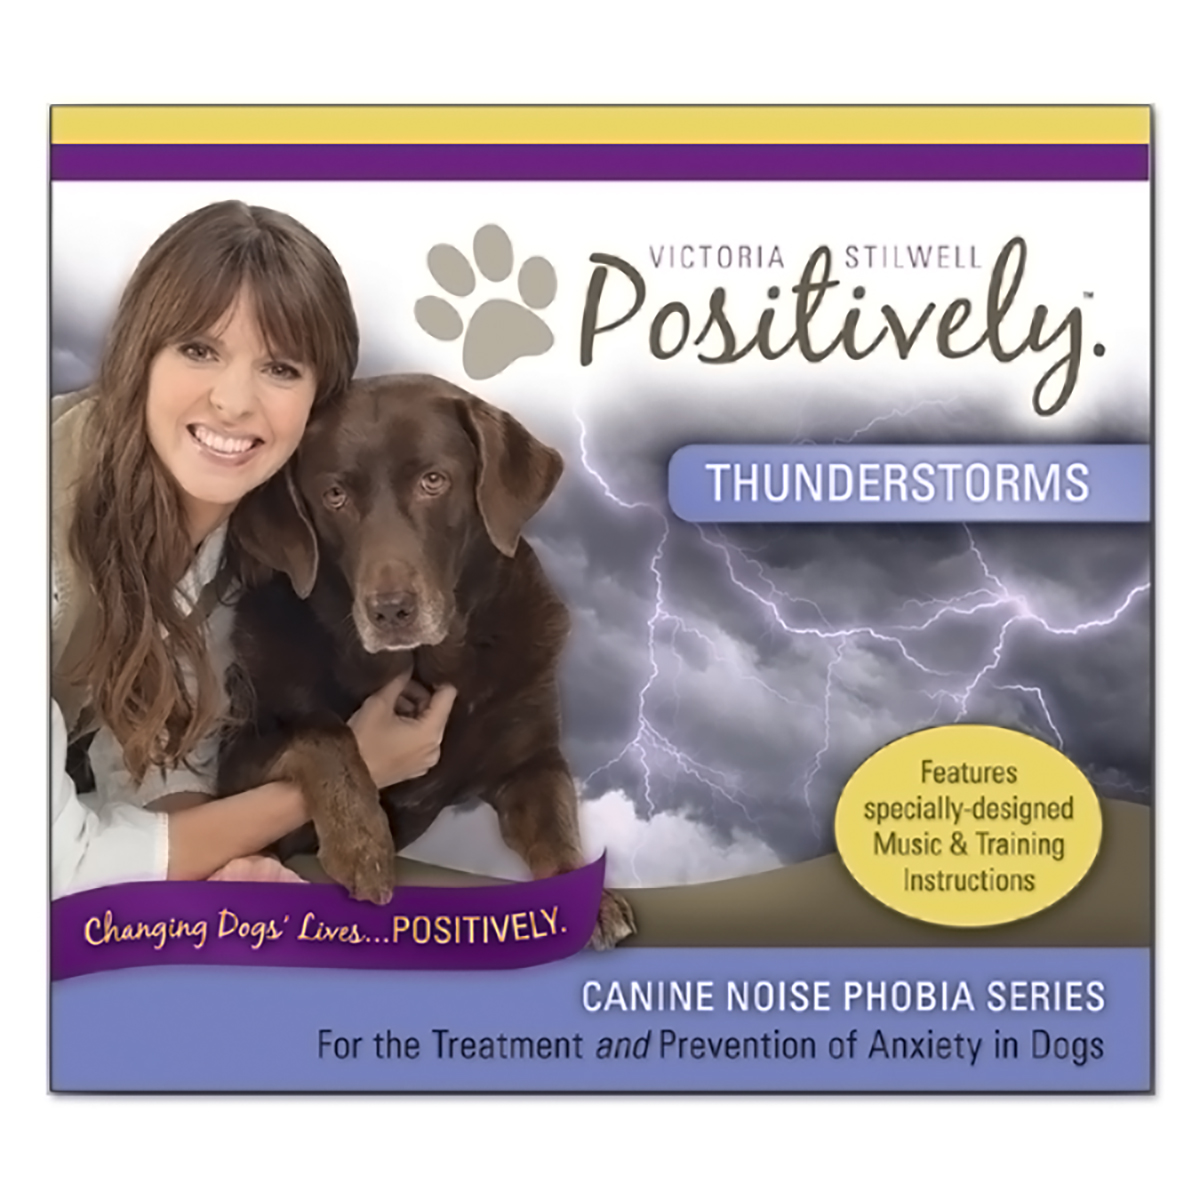 Canine Noise Phobia Series - Thunderstorms CD